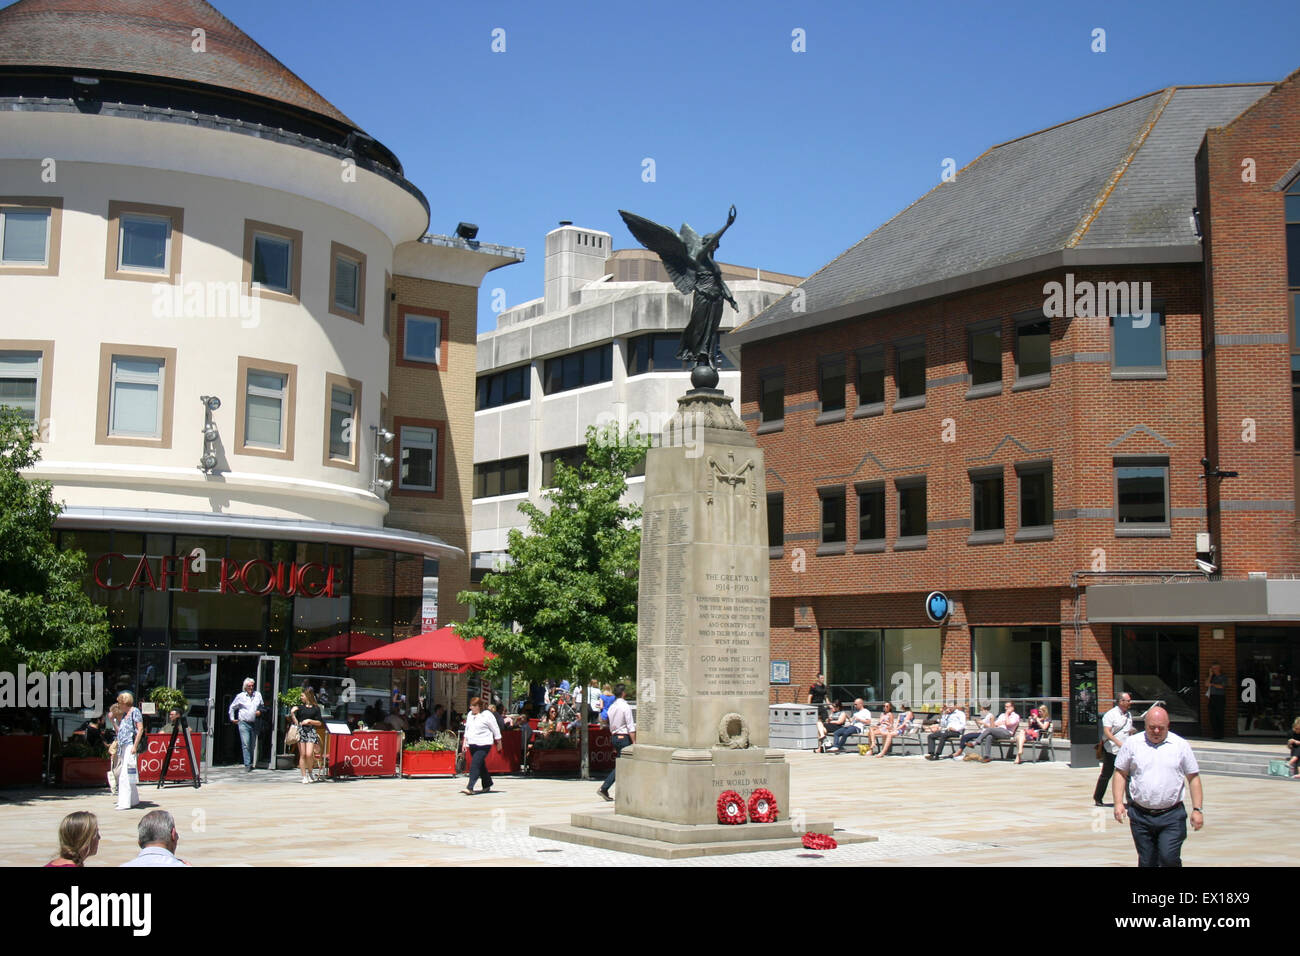 WOKING TOWN SQUARE CENTRE SURREY UK CAFE ROUGE - Stock Image